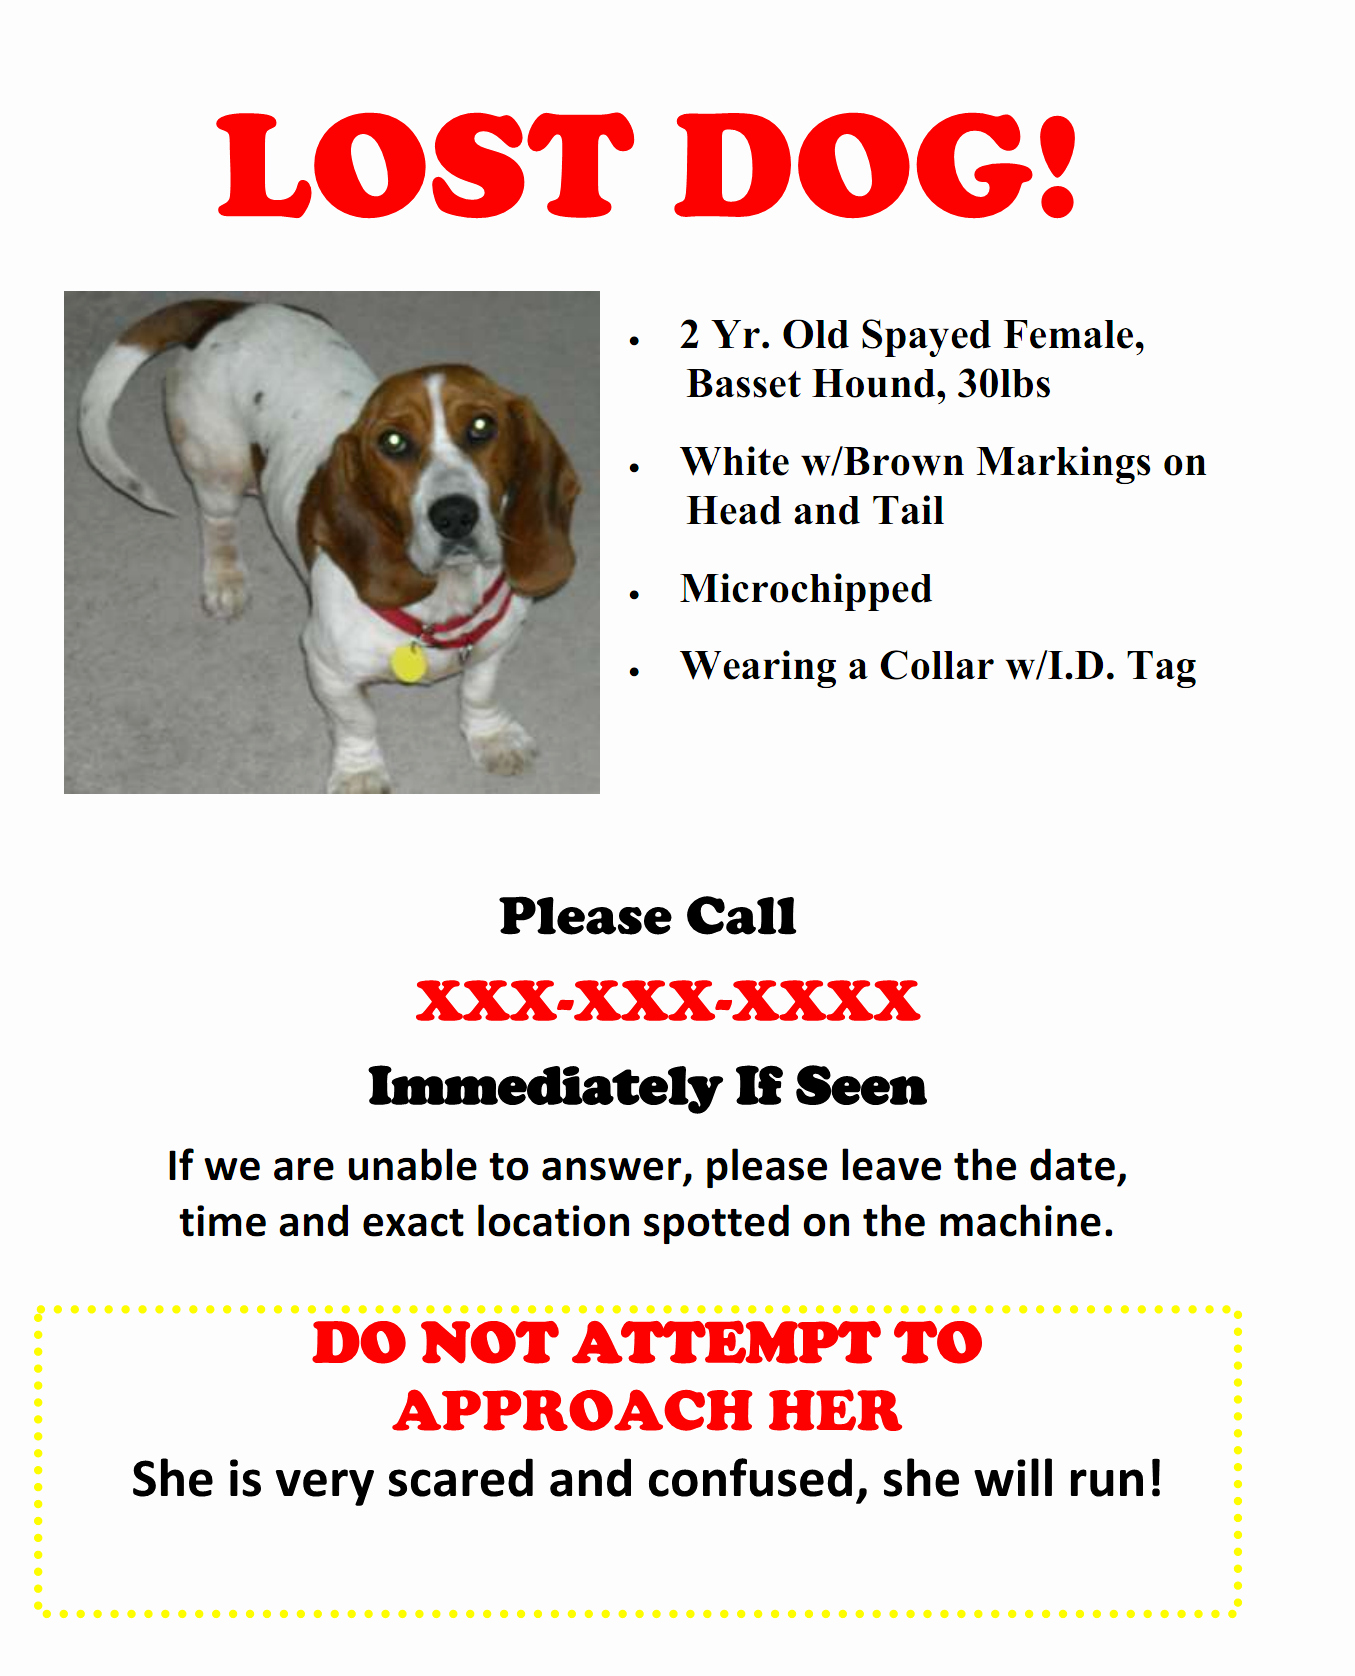 Lost and Found Sign Template Lovely Lost Dog Flyer Template Gallery Template Design Ideas